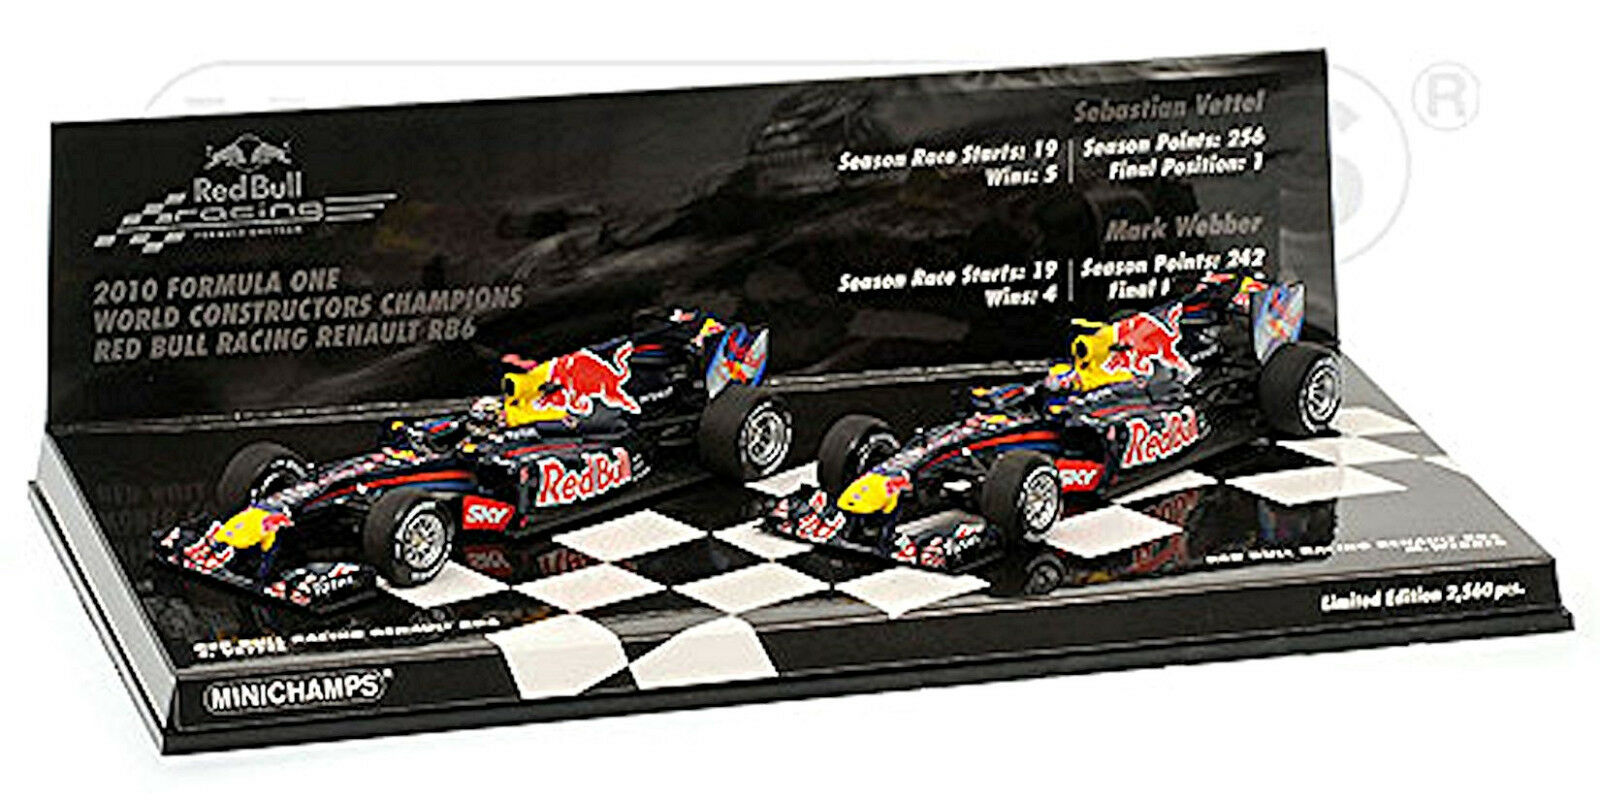 rouge Bull Racing Renault rb6 World constructors champions 2010 Démon Webber 1 43